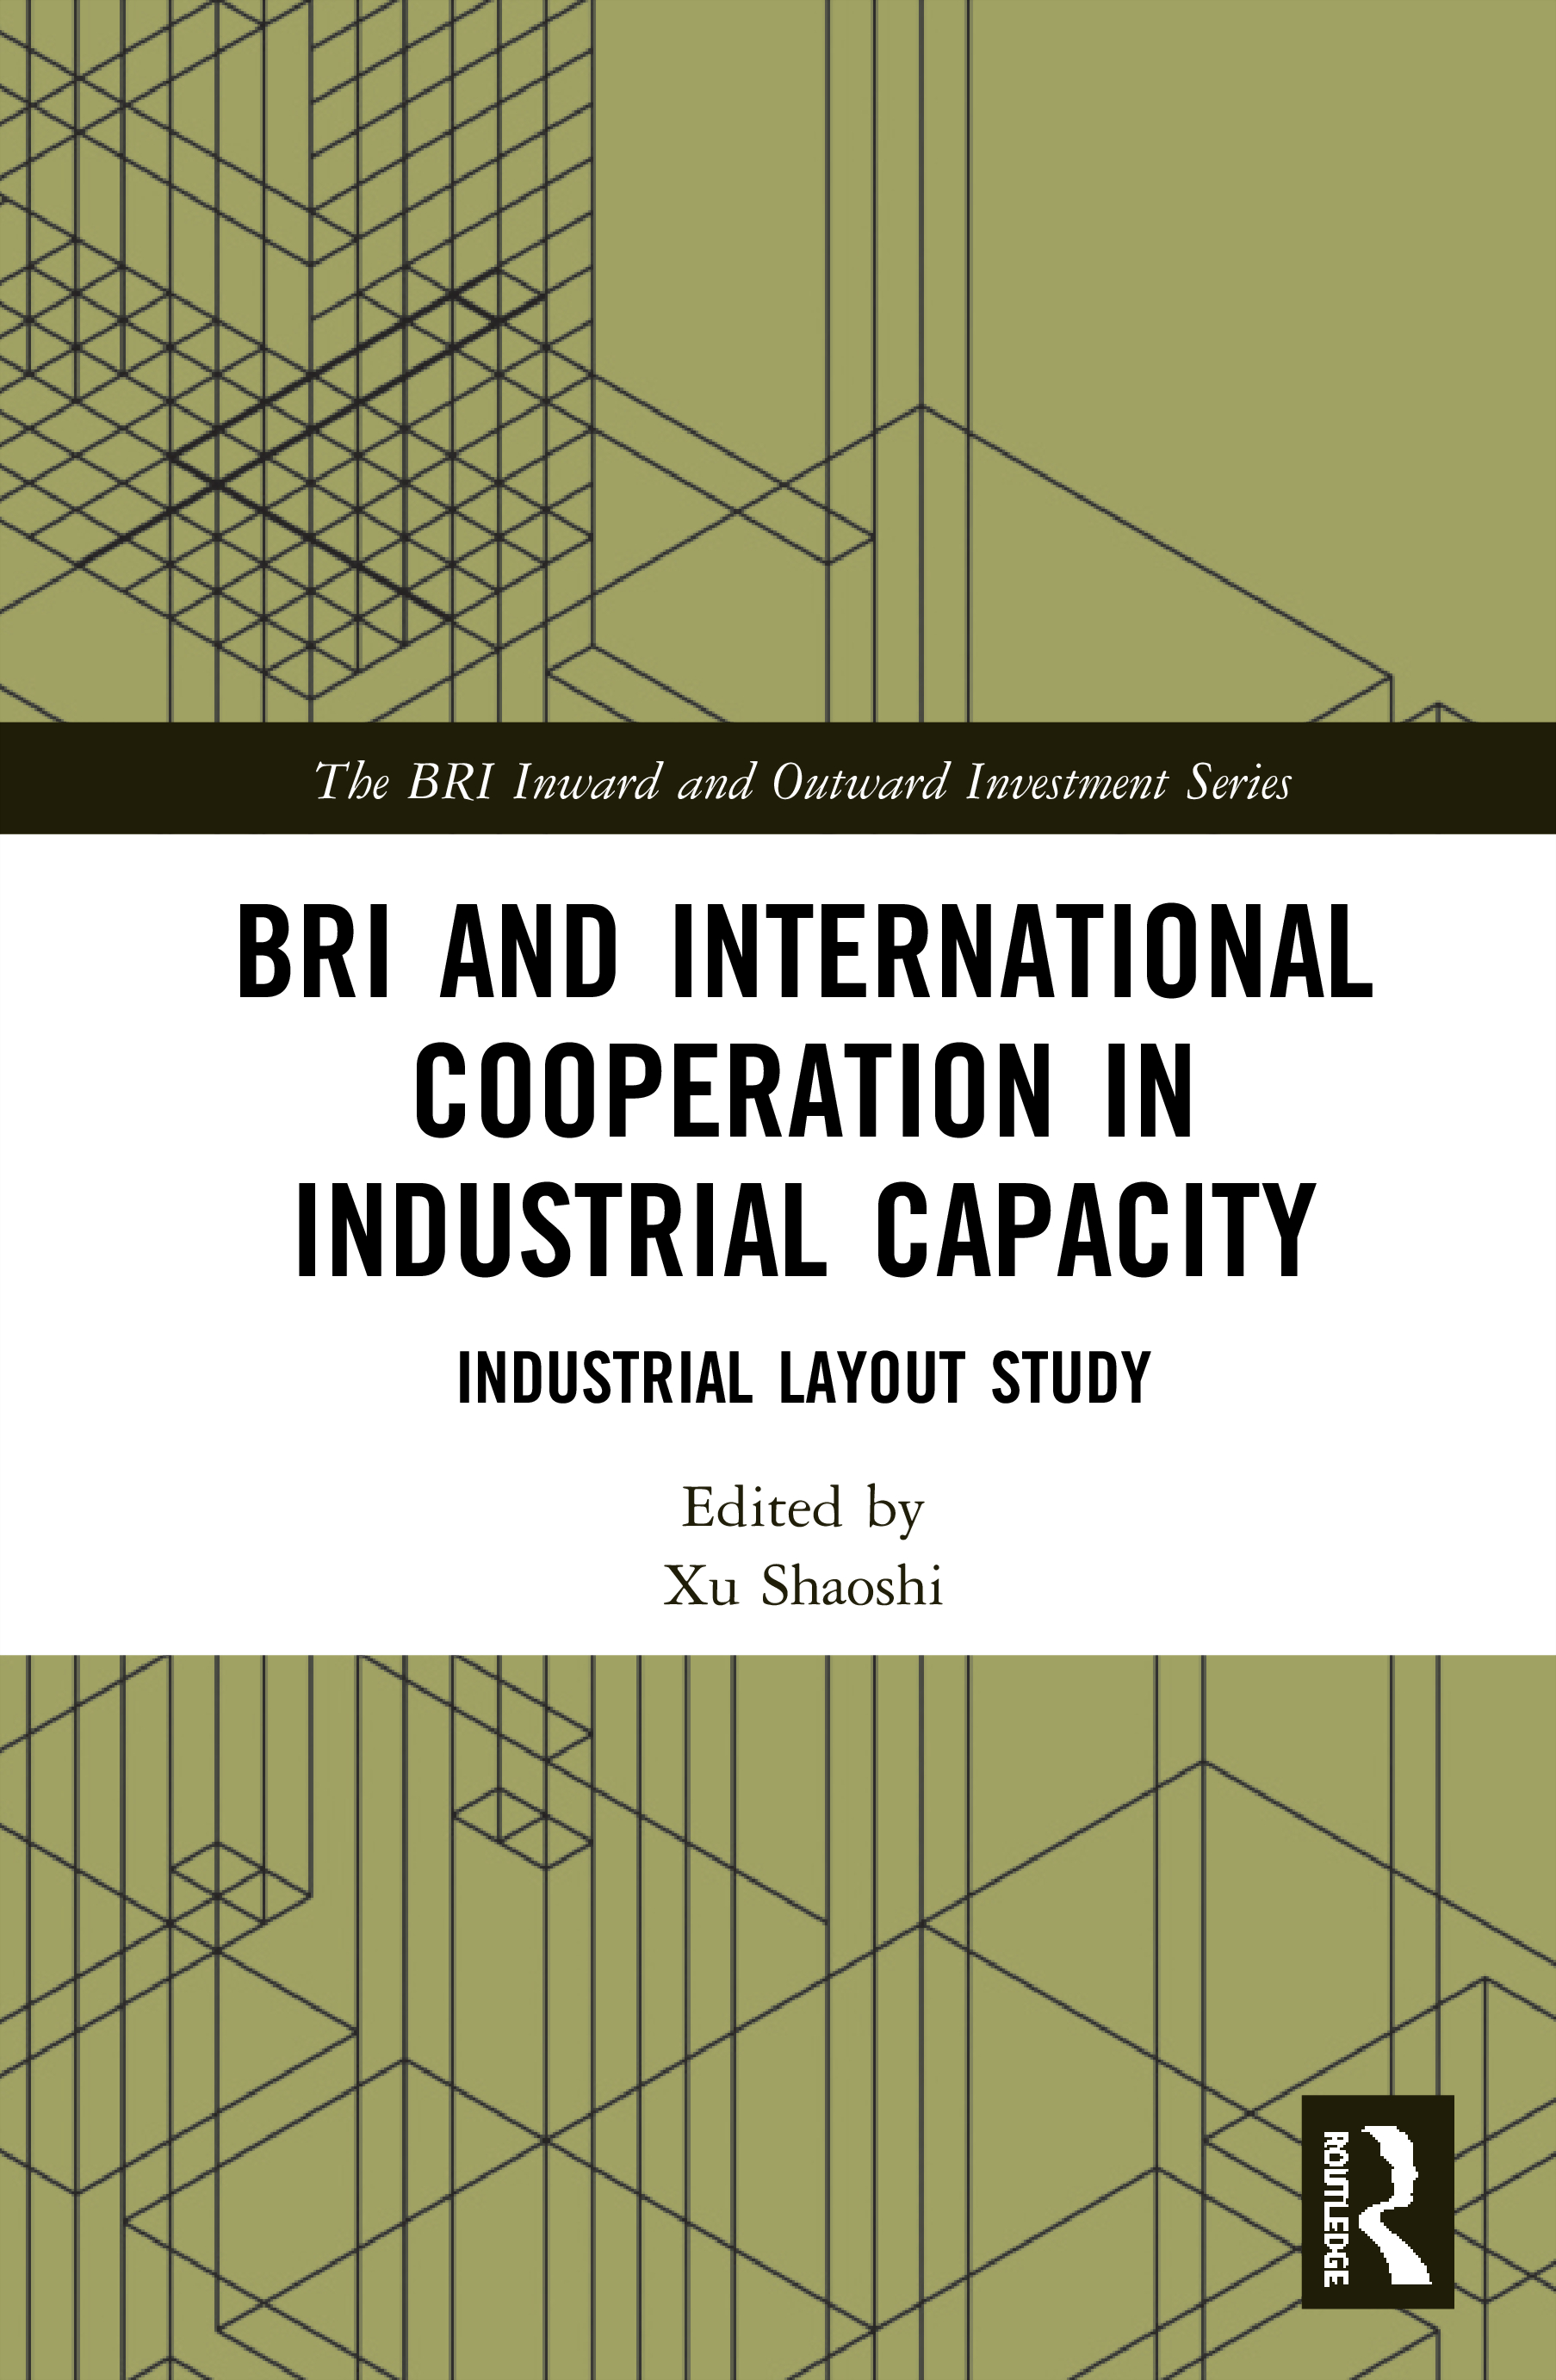 BRI and International Cooperation in Industrial Capacity: Industrial Layout Study book cover